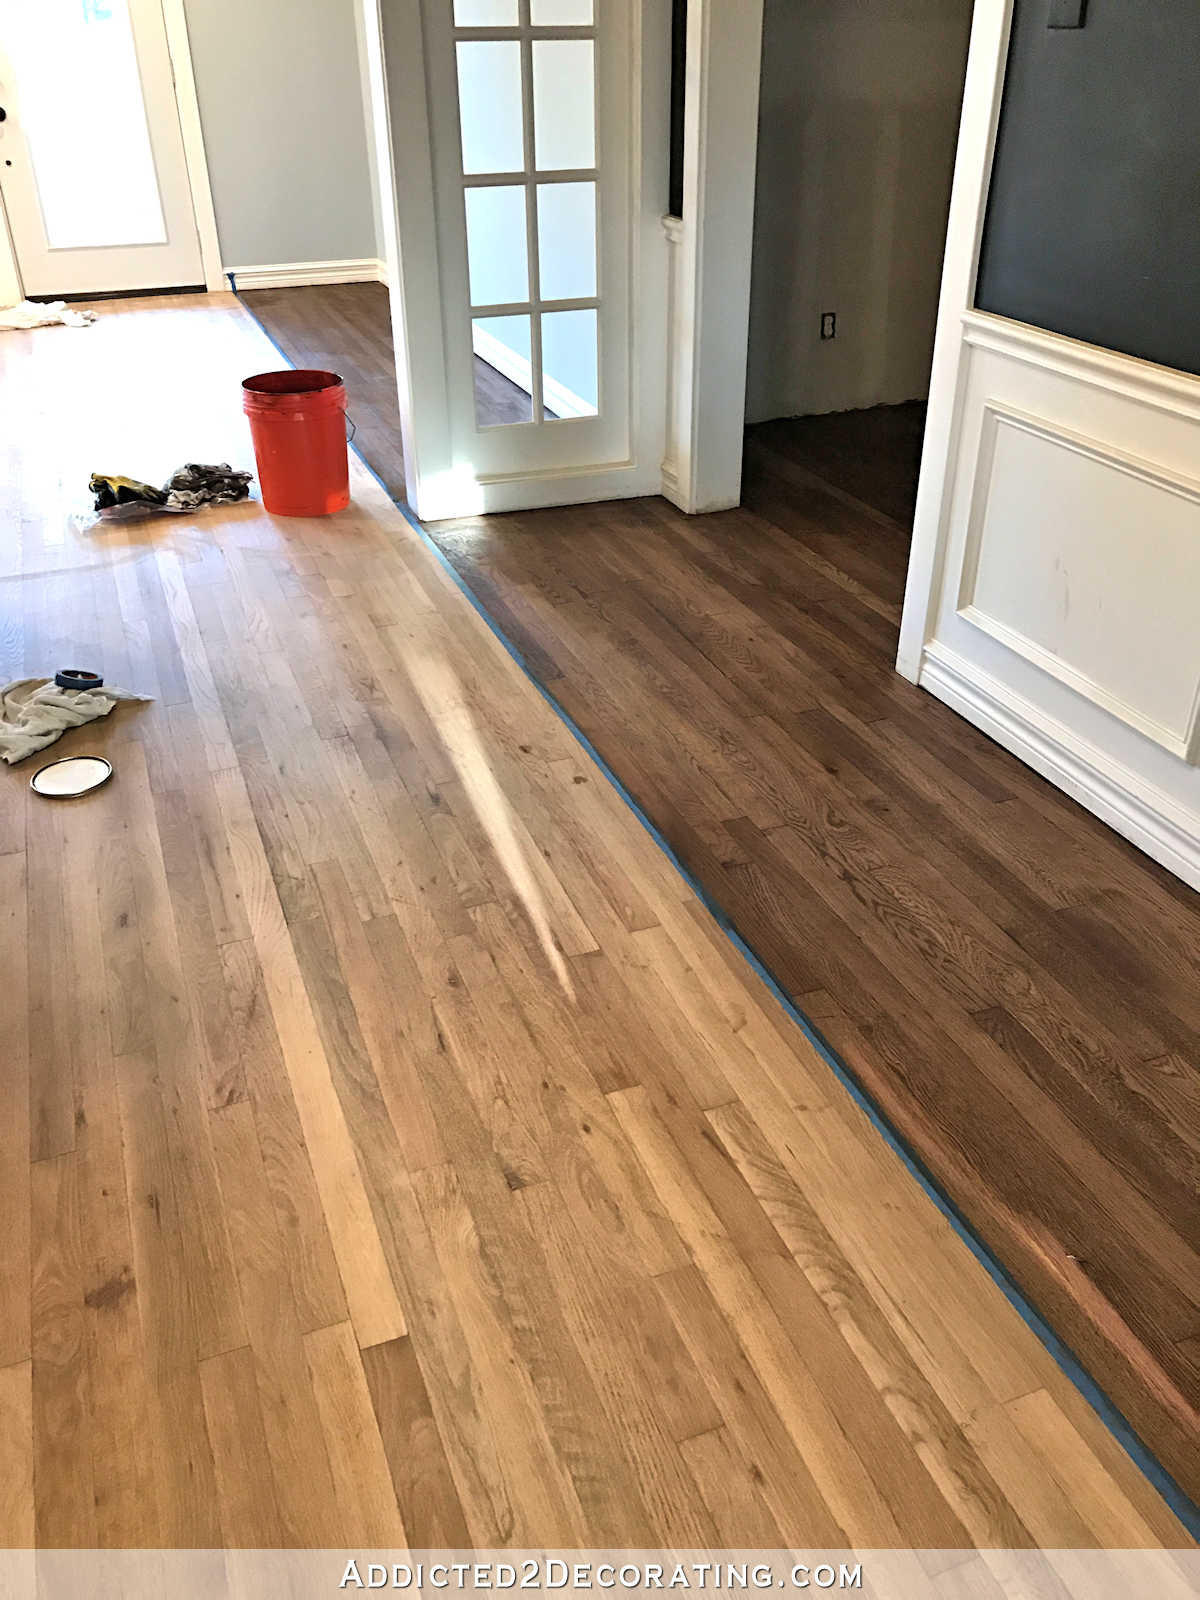 2.25 oak hardwood flooring of adventures in staining my red oak hardwood floors products process with staining red oak hardwood floors 6 stain on partial floor in entryway and music